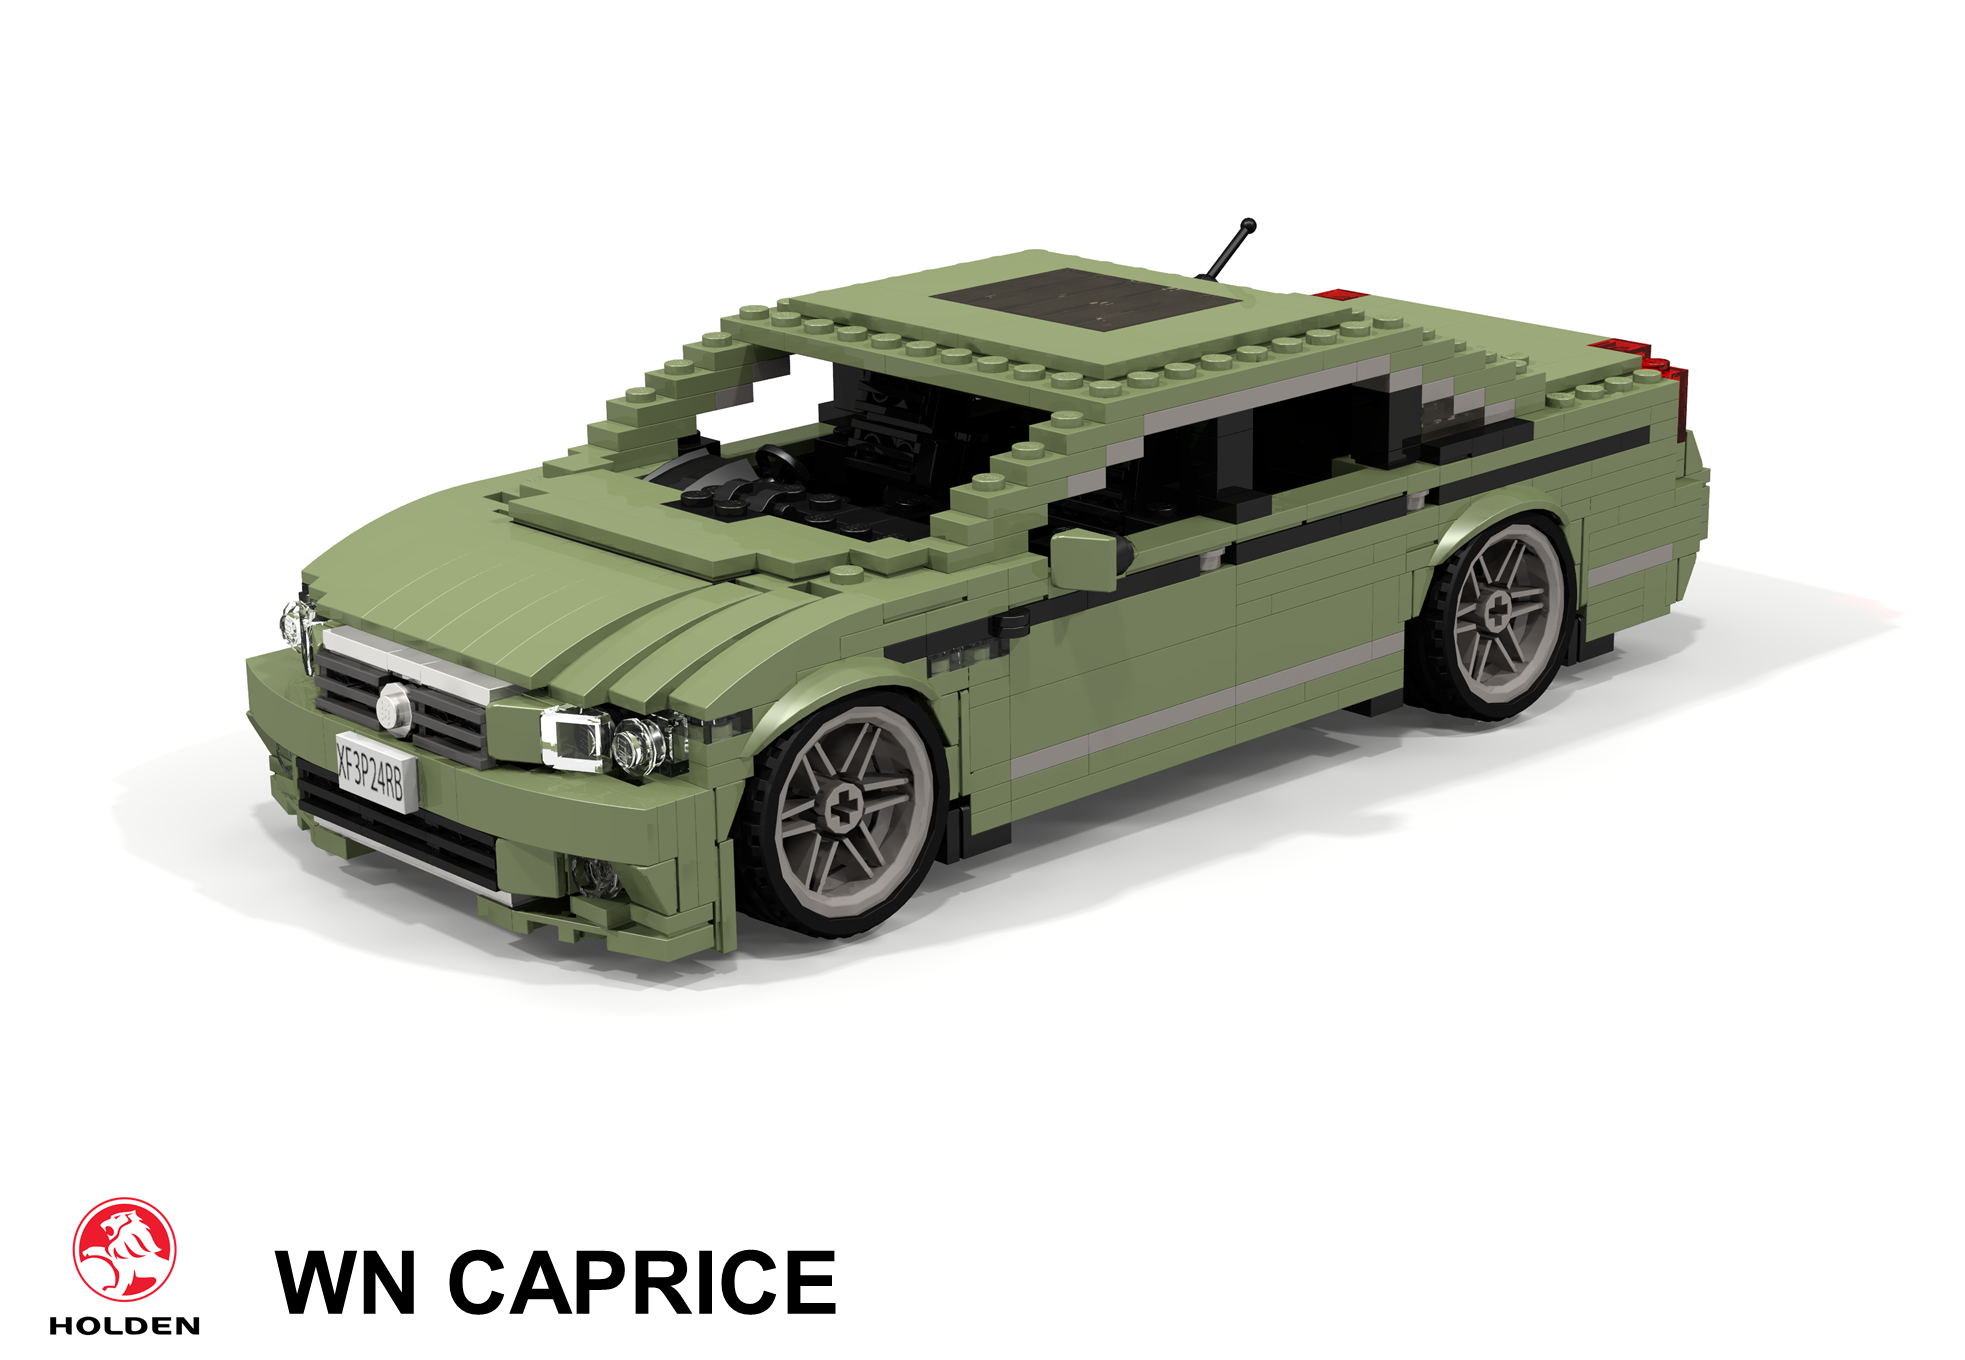 2014_holden_wn_caprice.png